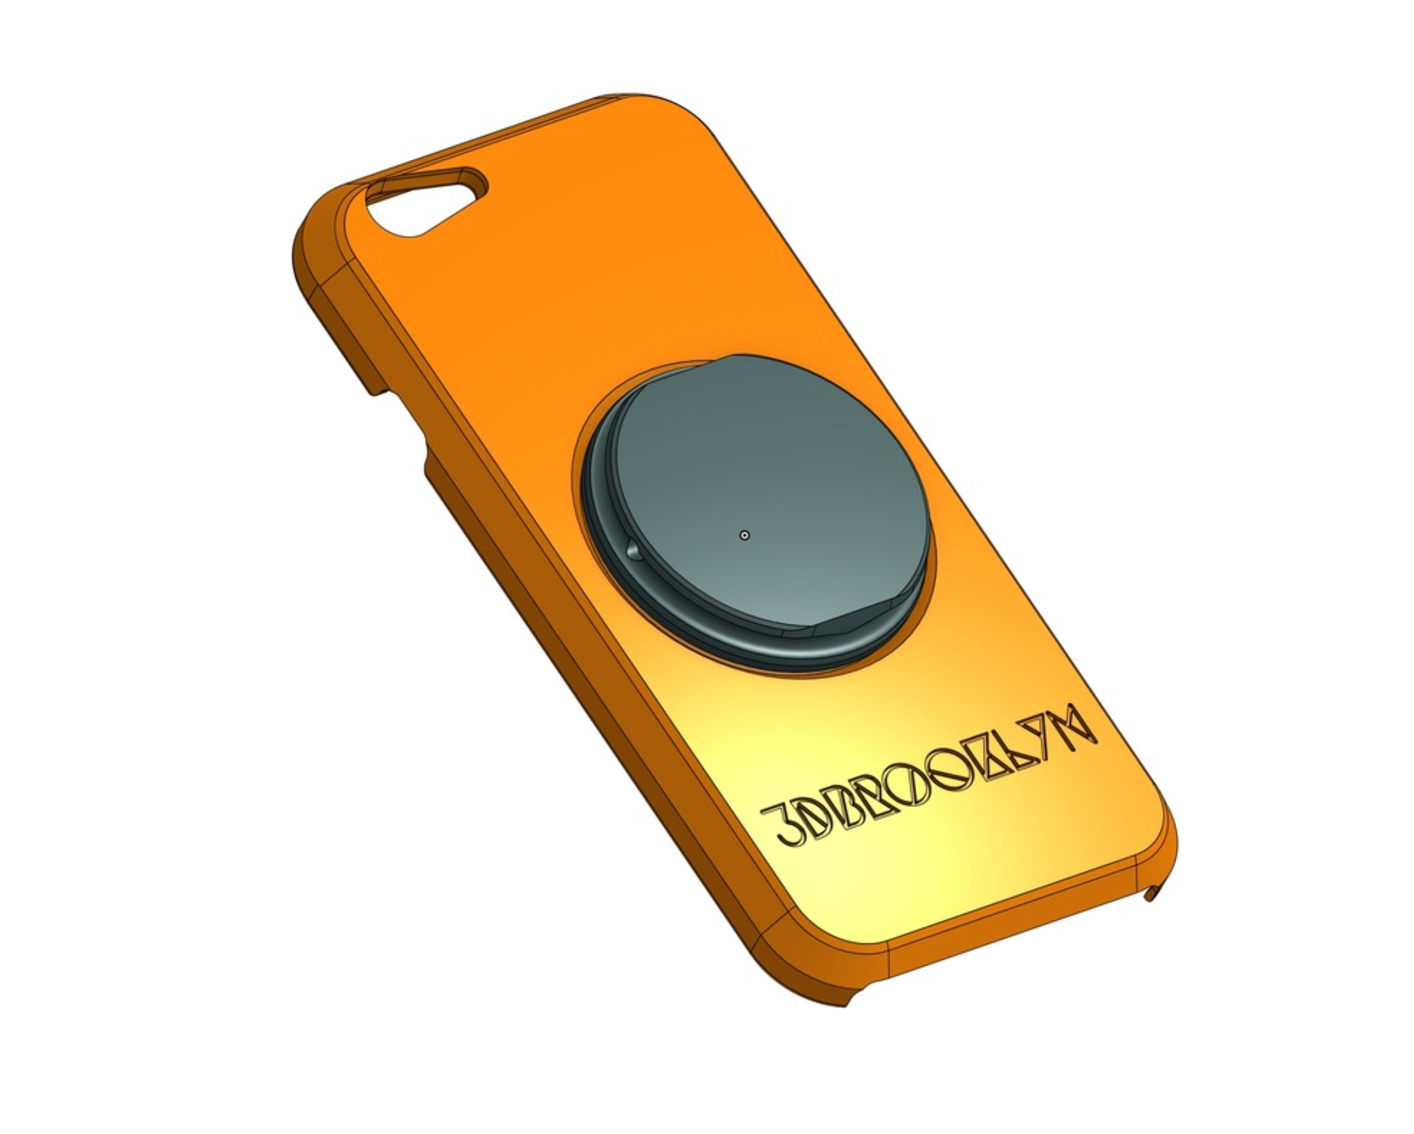 Capture d'écran 2017-06-16 à 11.40.55.png Download free STL file Fidget Spinner Phone Case • 3D printing template, 3DBROOKLYN